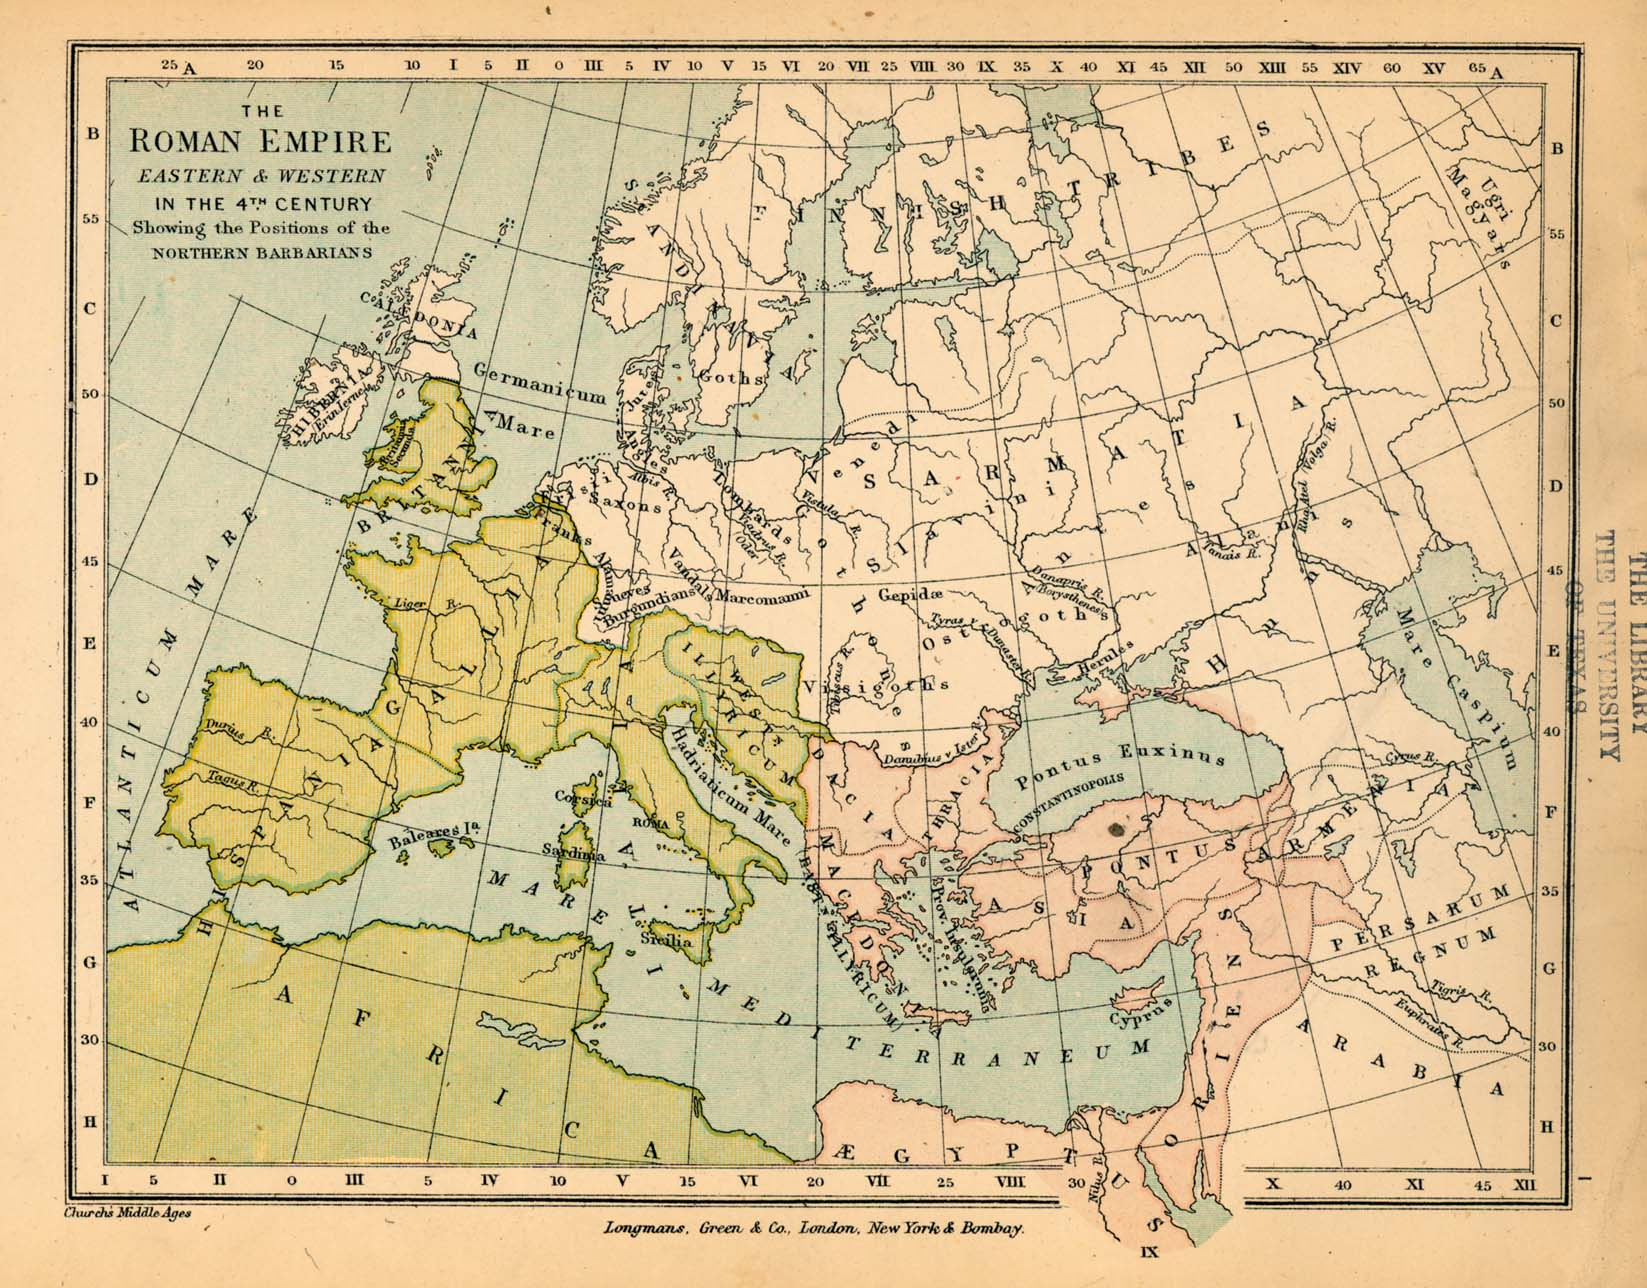 The Roman Empire, Eastern and Western, in the 4th Century